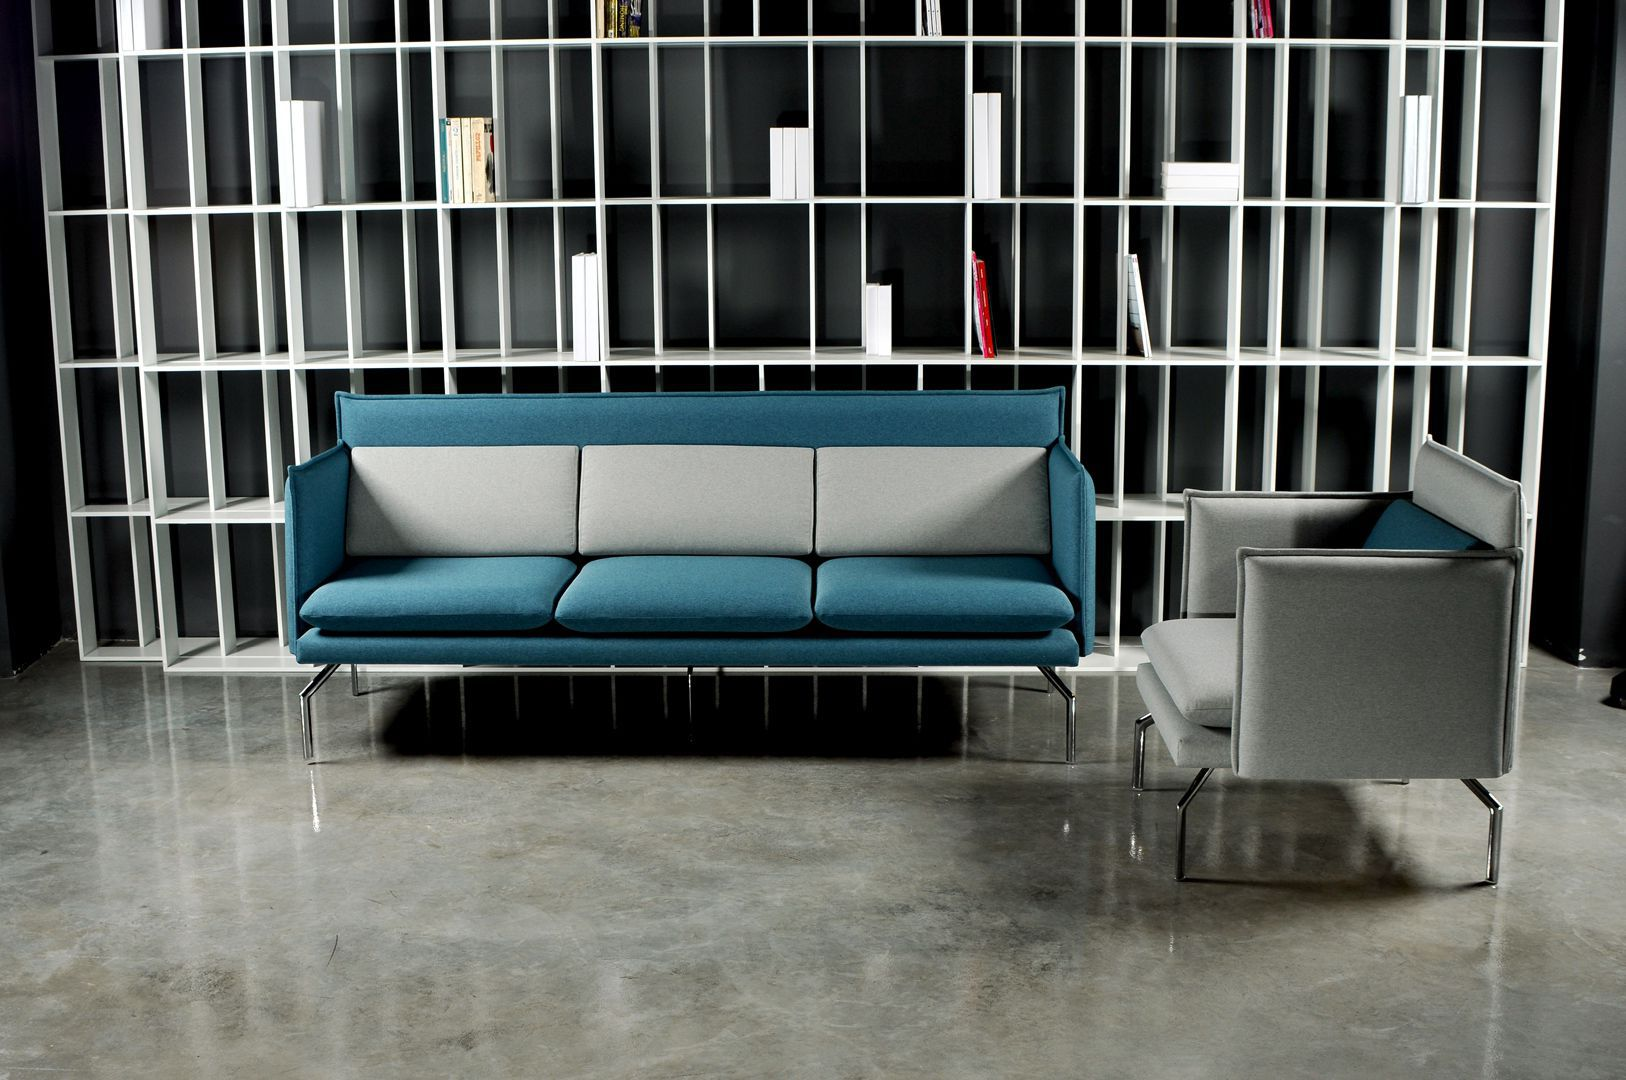 Schlafsofa design lounge  Contemporary sofa / leather / synthetic leather / fabric - CUBE ...